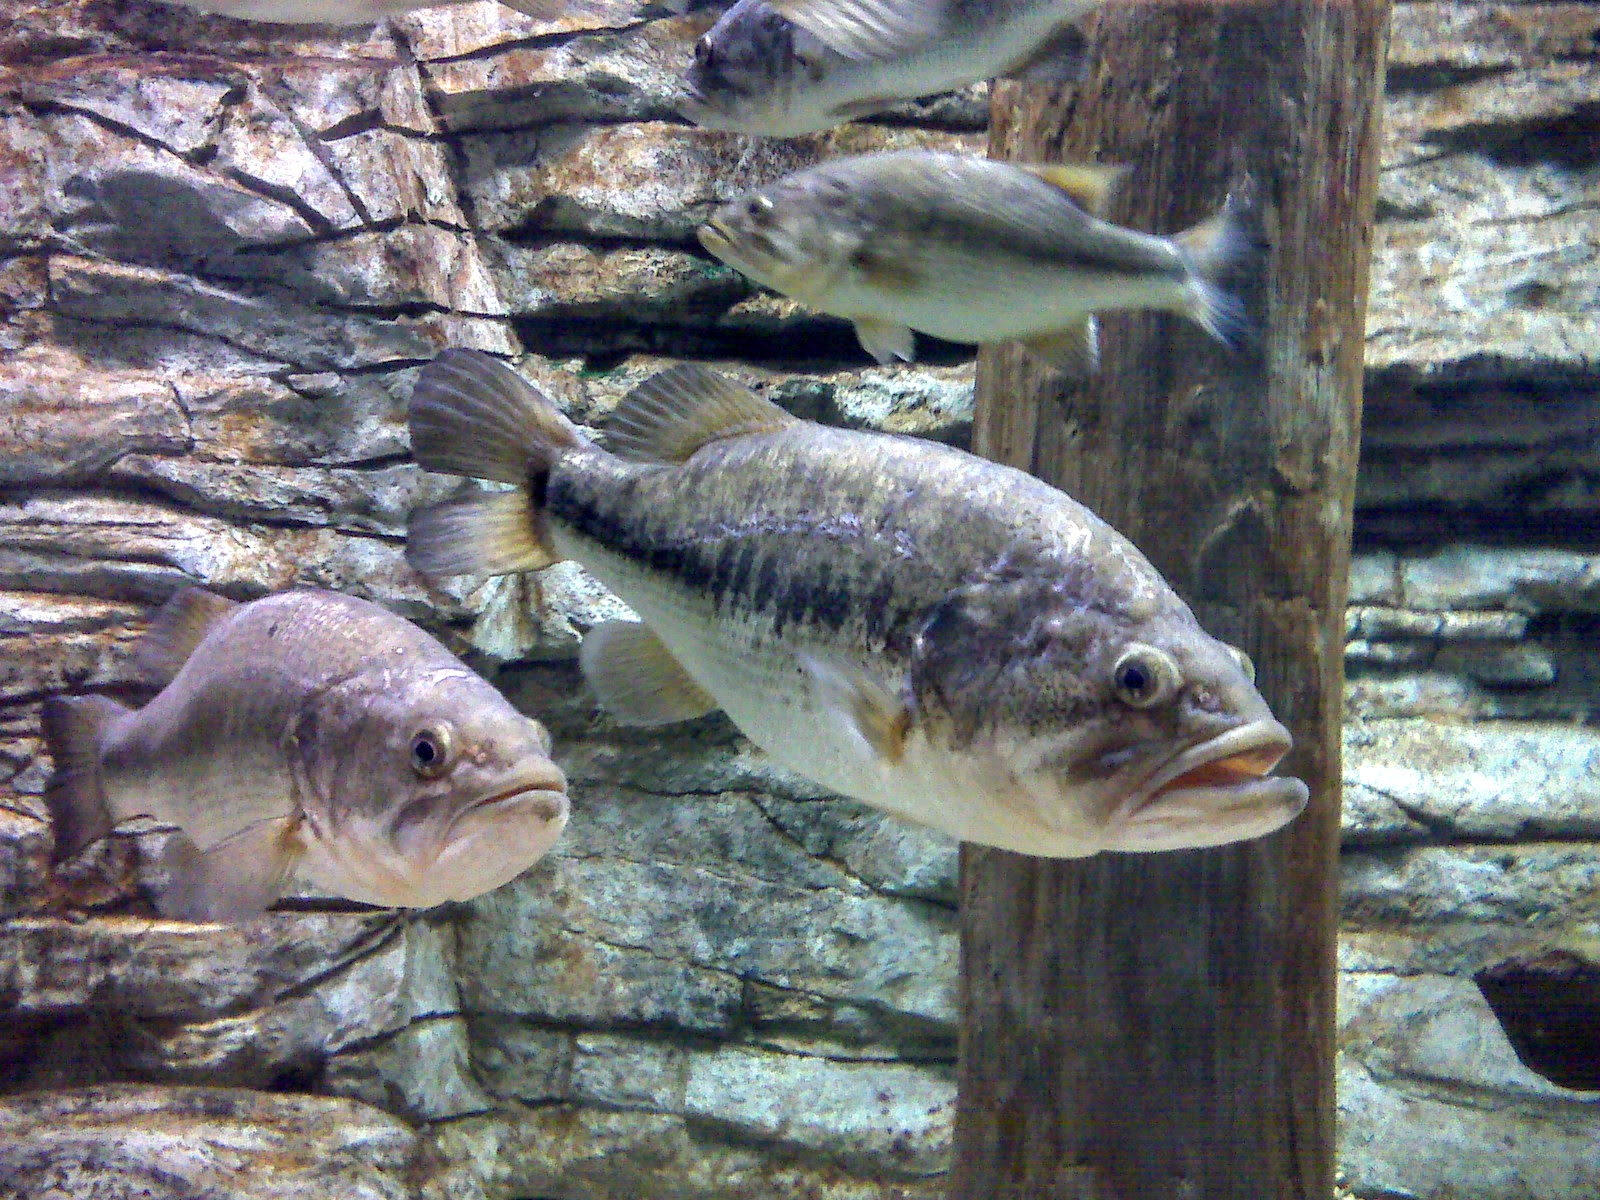 Largemouth bass in close to cover